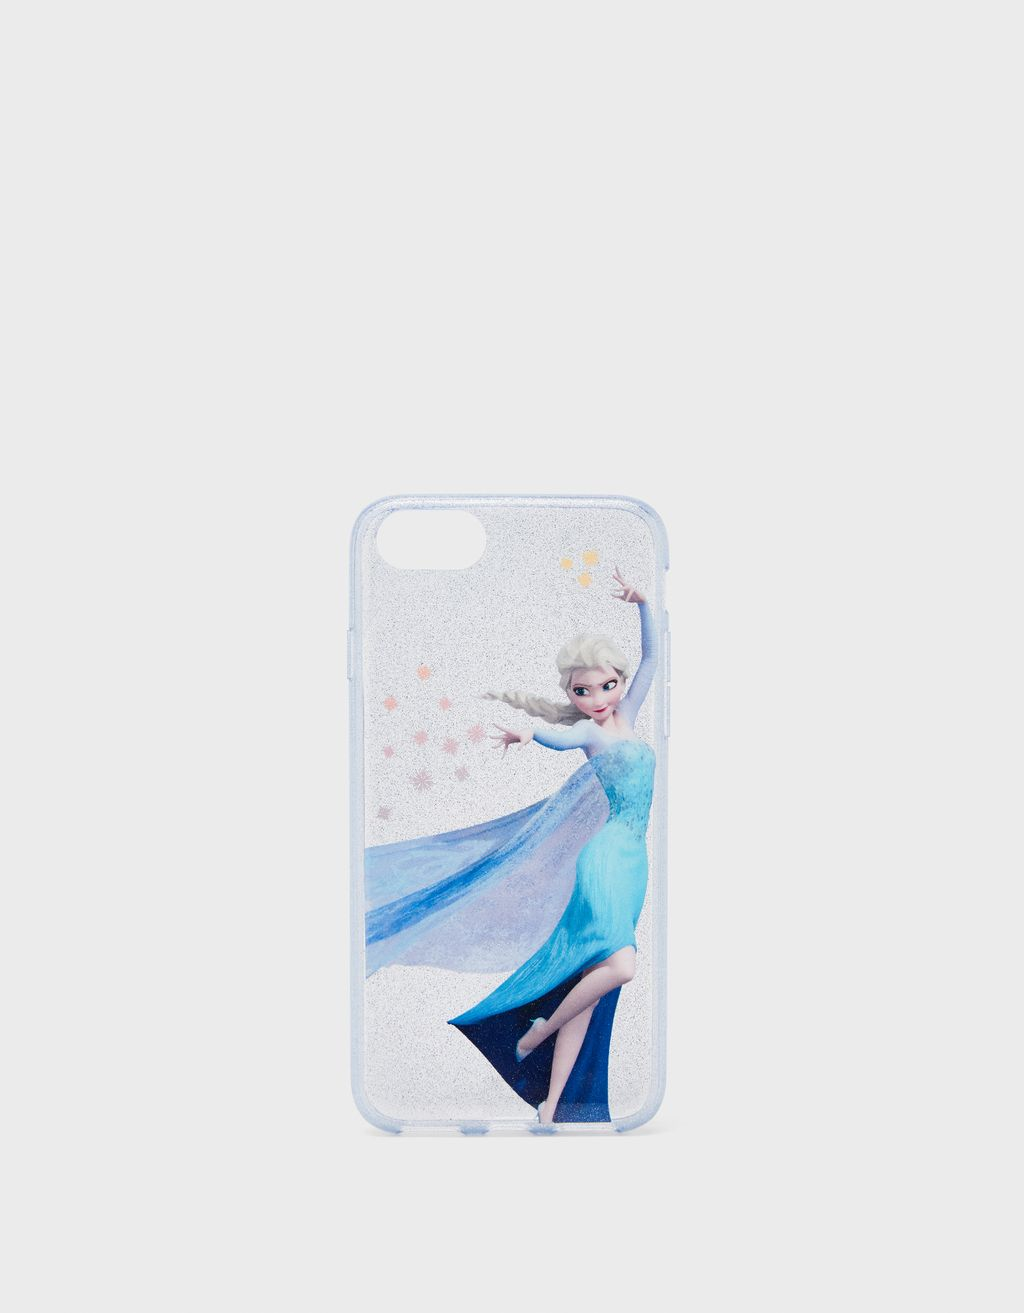 Frost-cover til iPhone 6 / 6S / 7 / 8